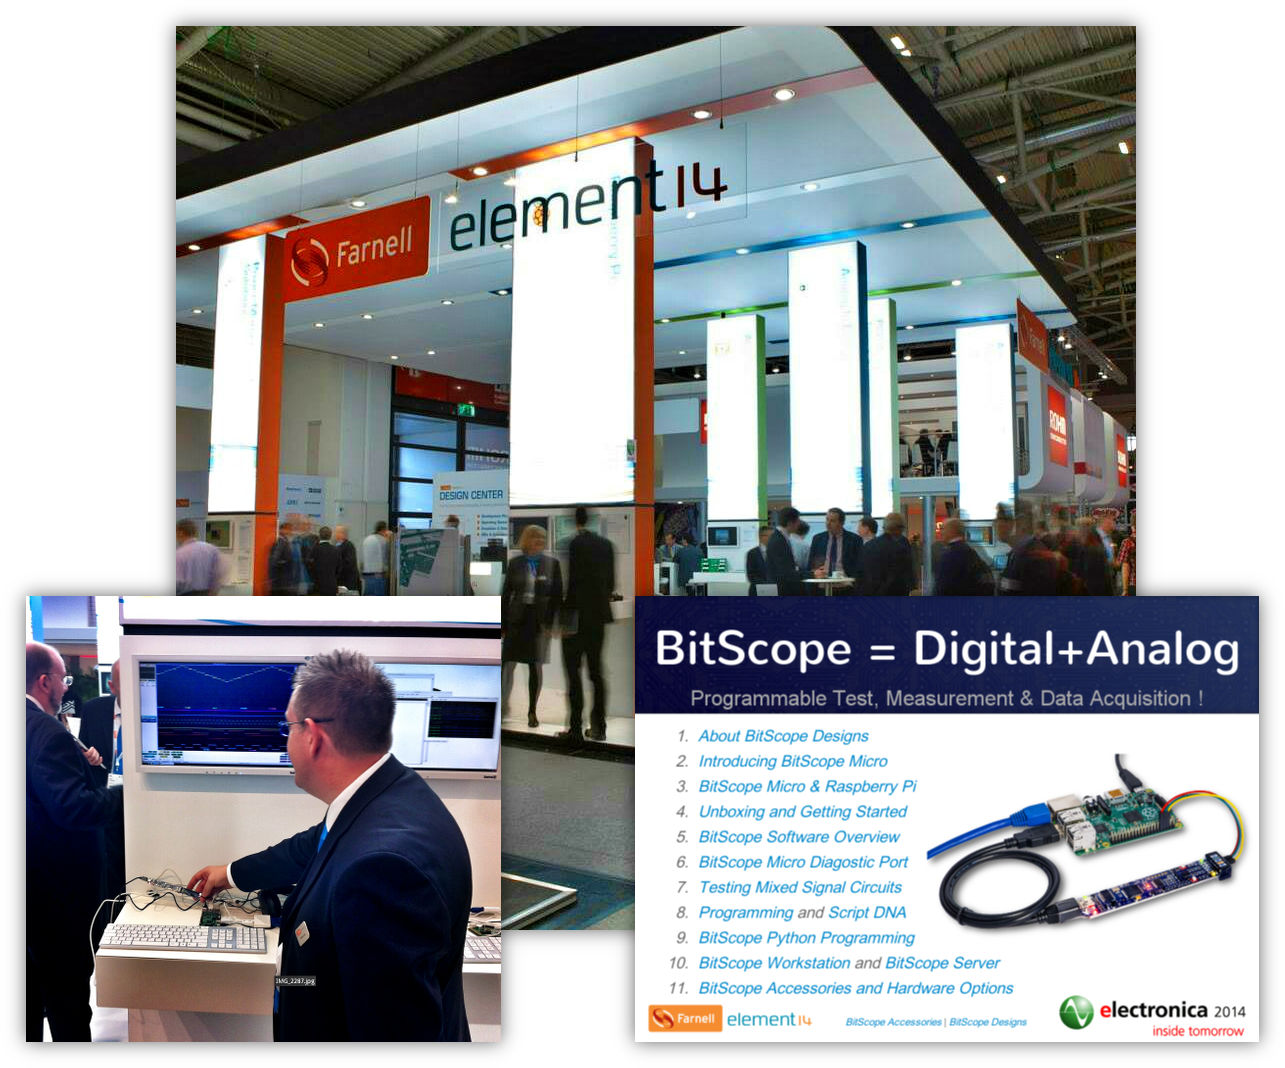 BitScope Micro at electronica with Farnell element14